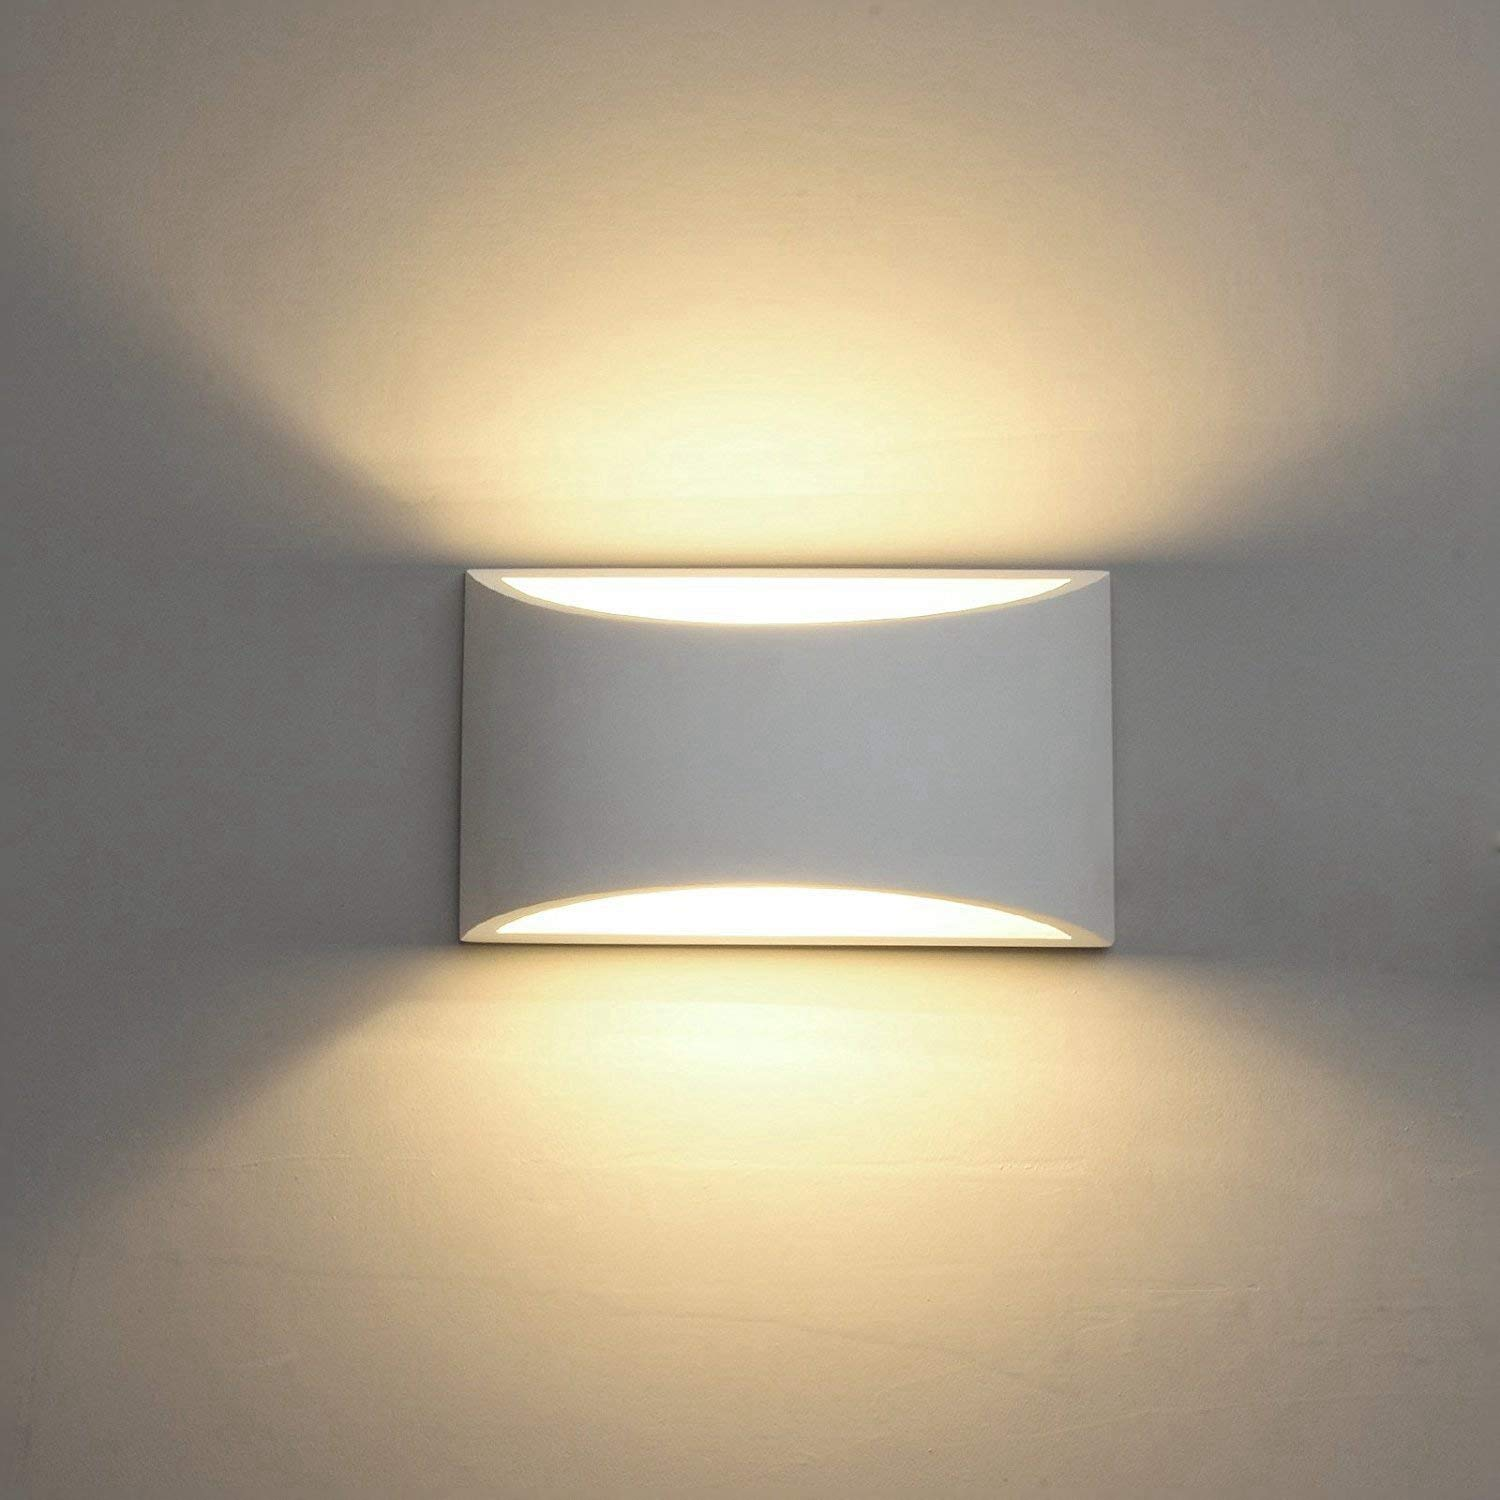 Modern led wall sconce lighting fixture lamps 7w warm white 2700k up and down indoor plaster wall lamps for living room bedroom hallway conservatory